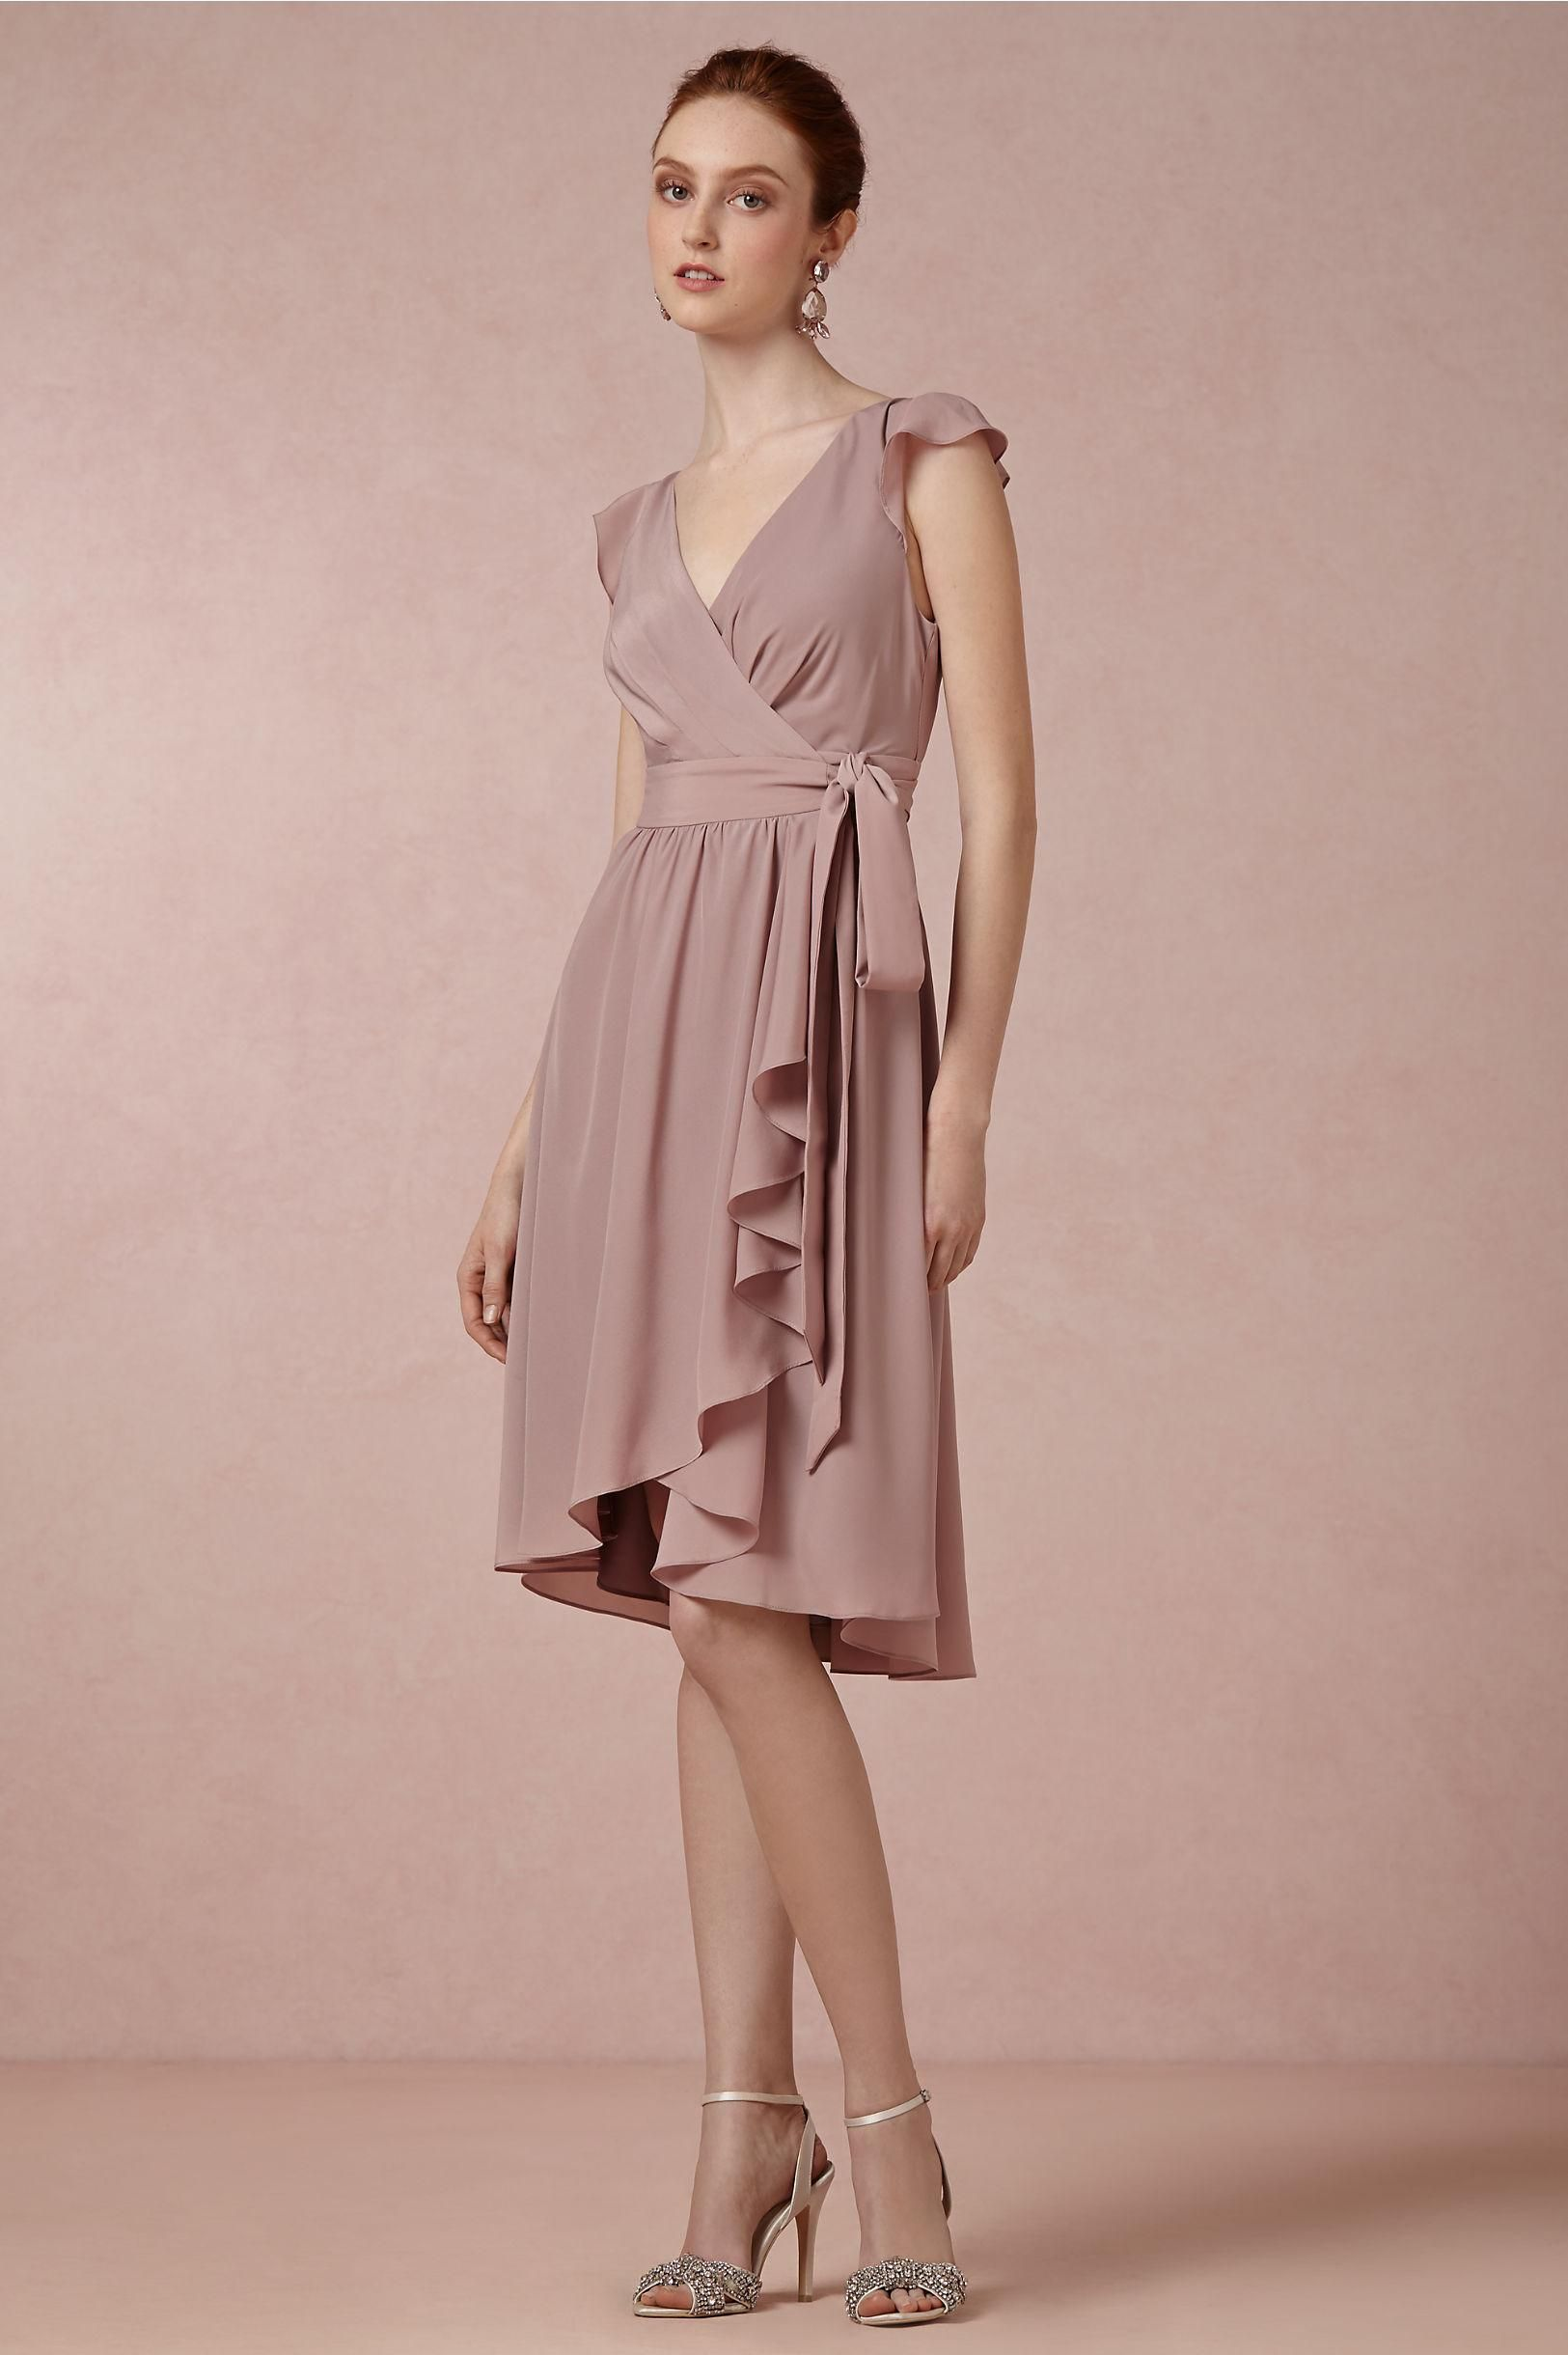 Sydney bridesmaid dress in dusty mauve from bhldn future ideas sydney bridesmaid dress in dusty mauve from bhldn ombrellifo Image collections